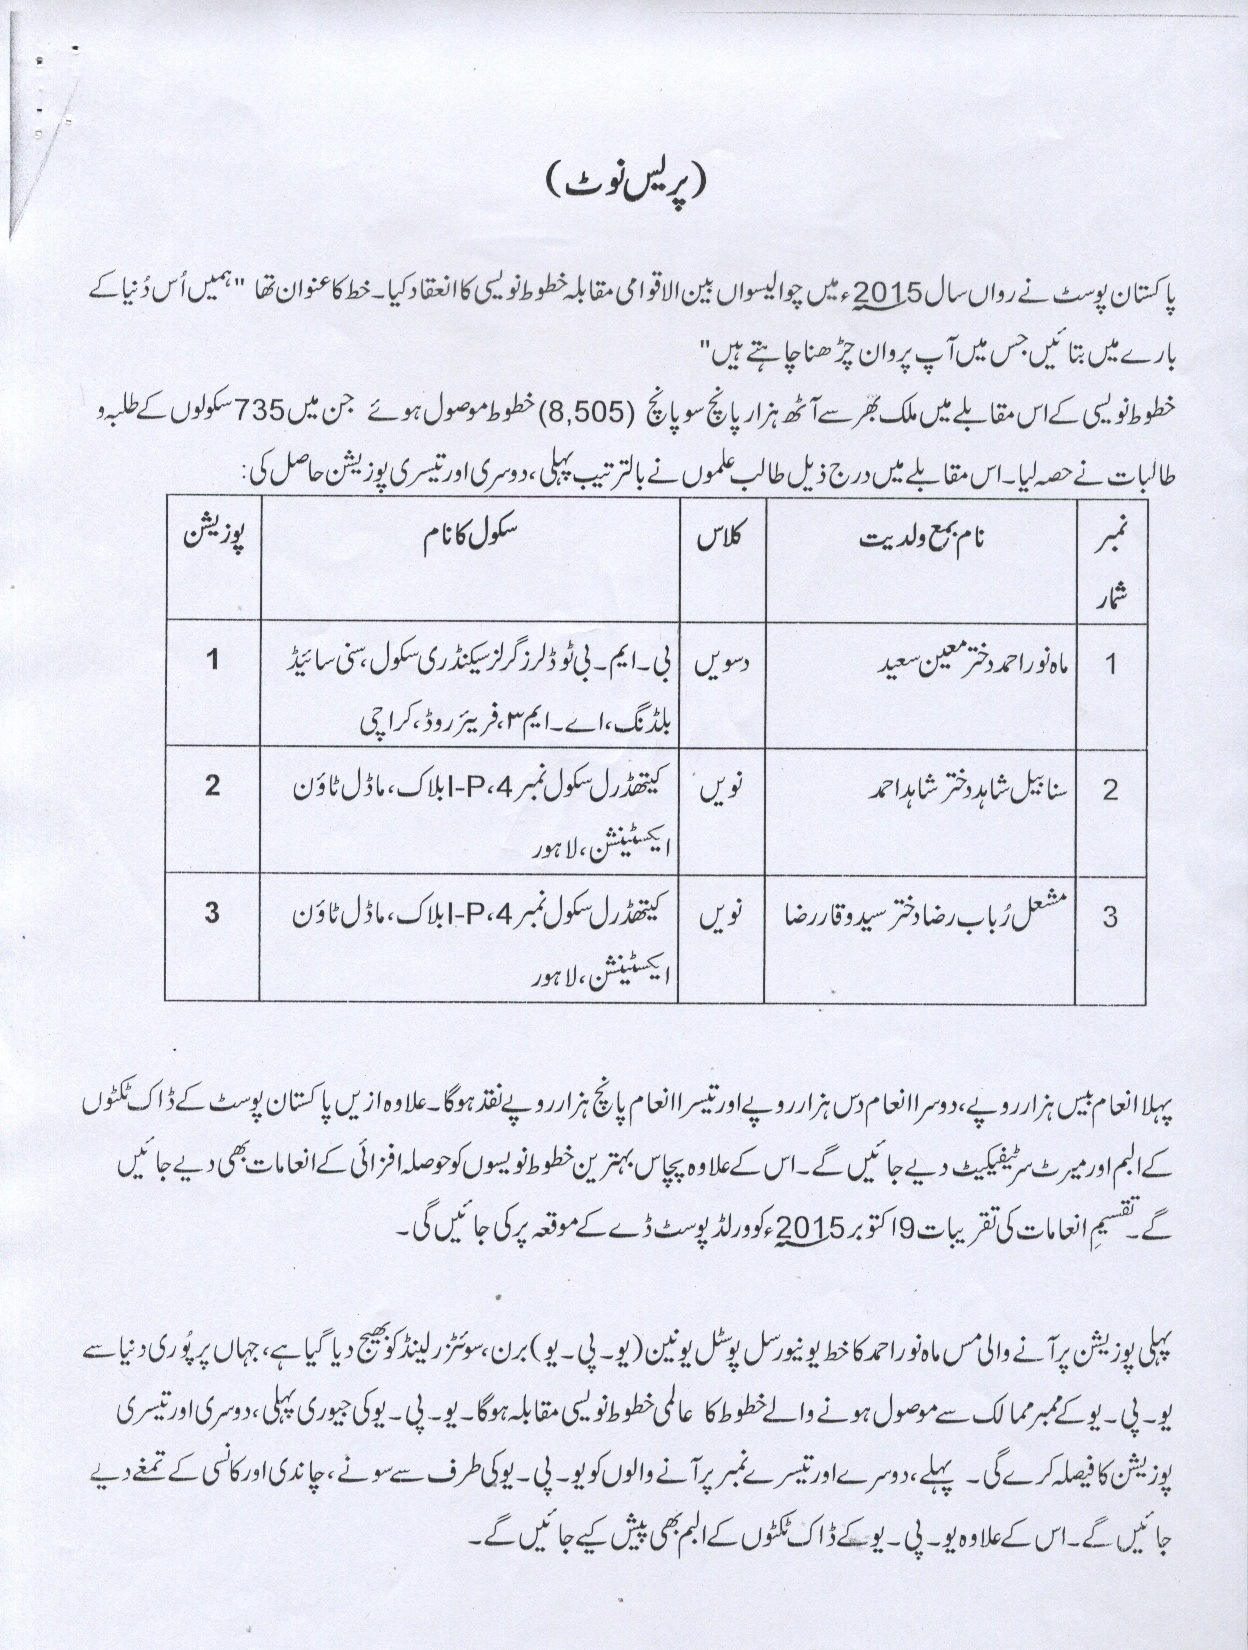 pakistan post essay competition A deadly triangle: afghanistan, pakistan,  minister of pakistan, a post he has held on two previous occasions  of mutual mistrust and competition if pakistan.